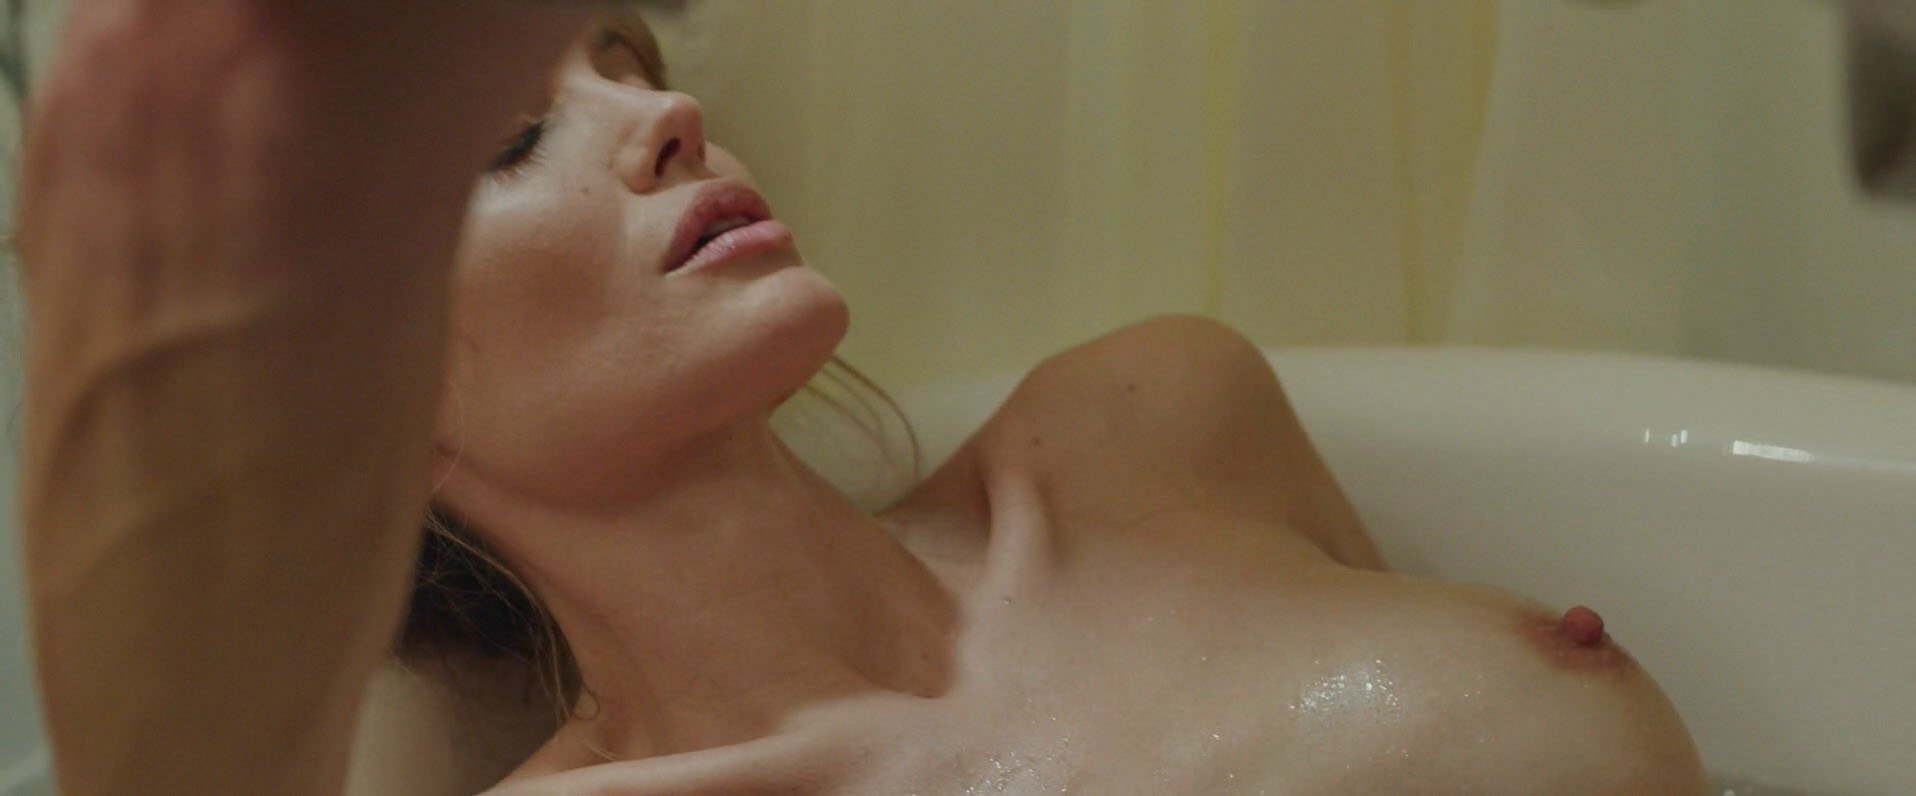 angelina jolie clips naked